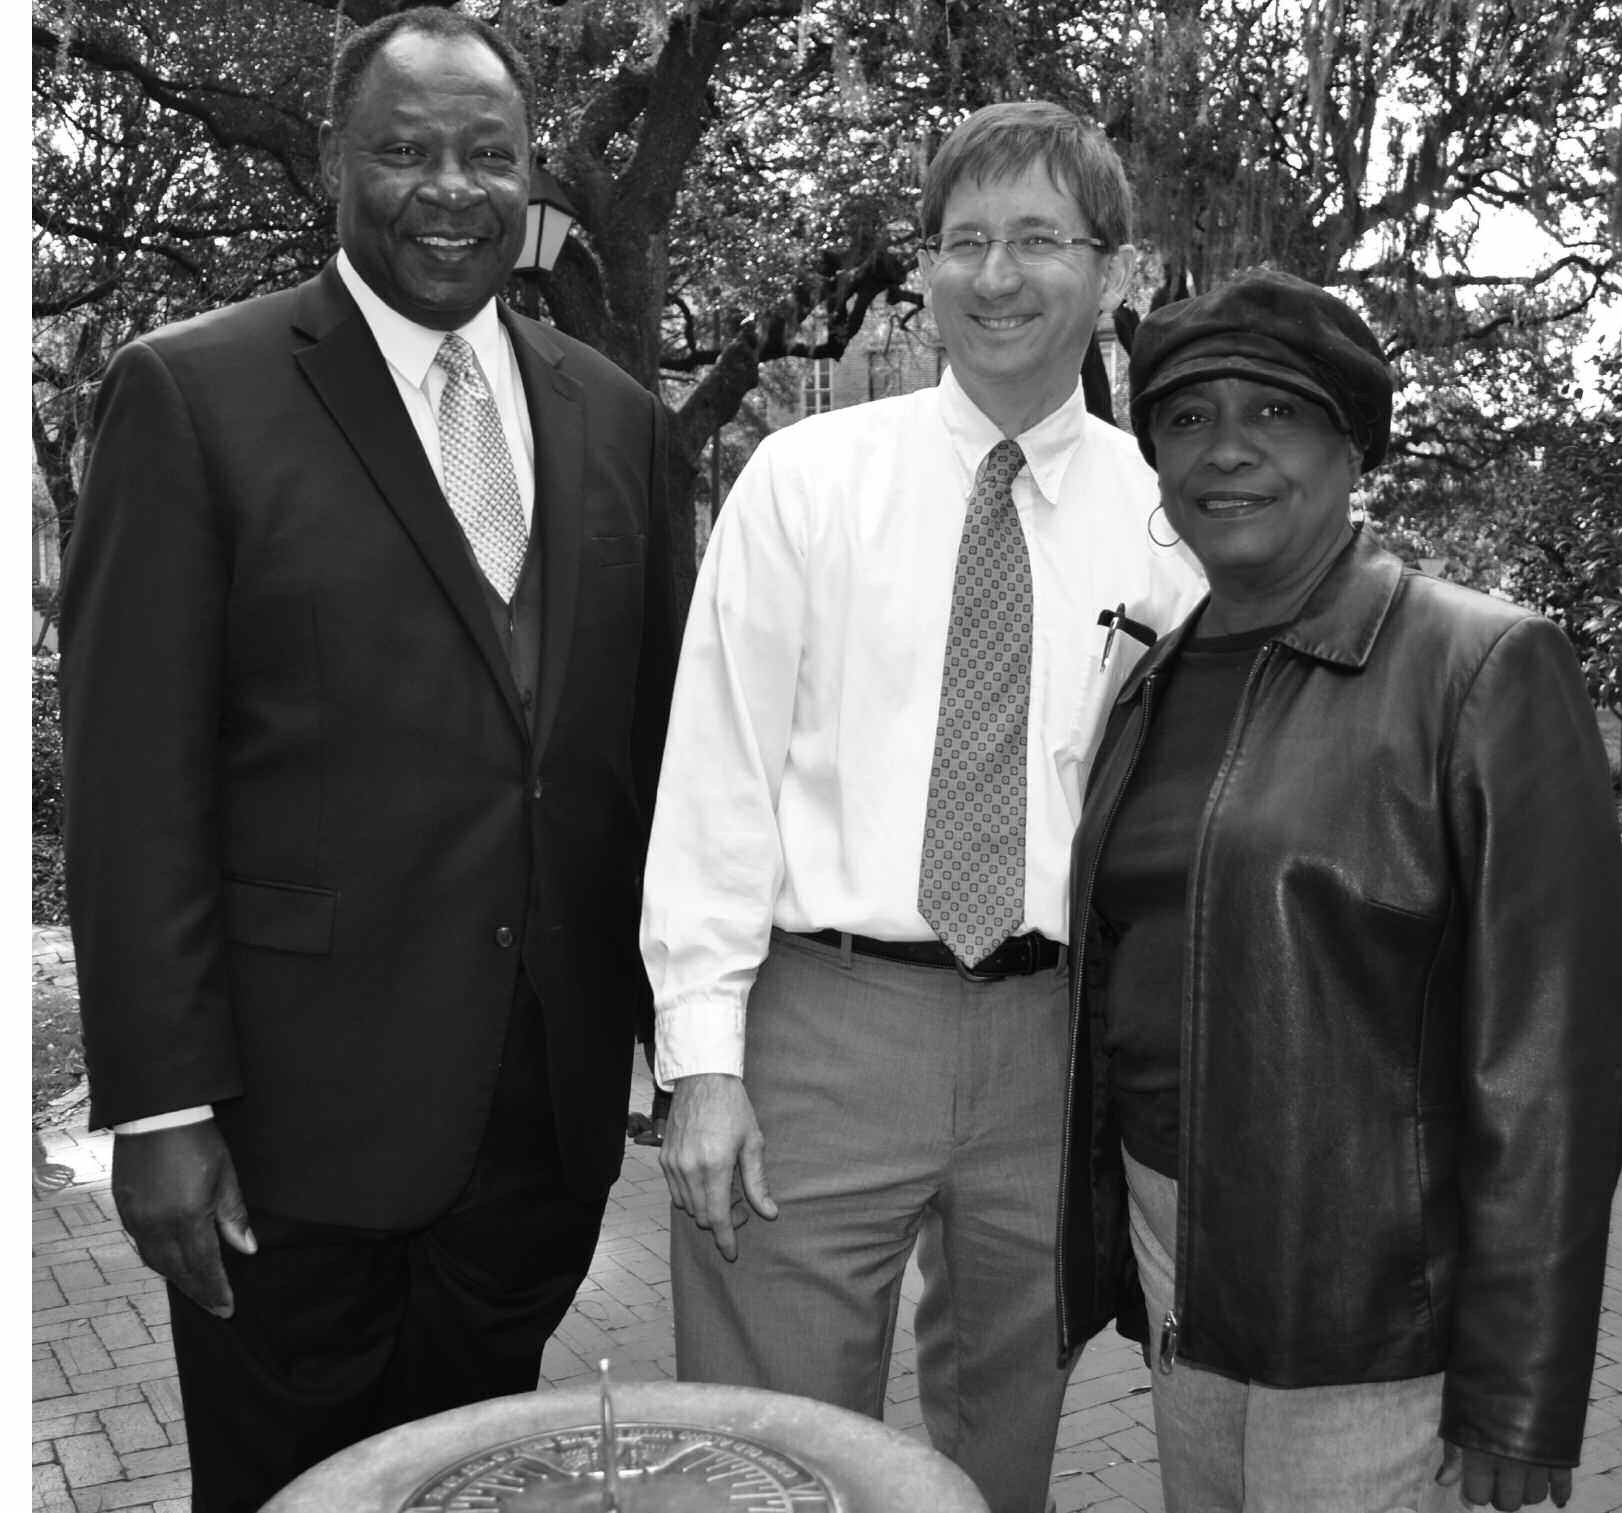 (L – R) Robert E. James, President of Carver State Bank; Jerry Flemming, Director of Park and Trees and Cemeteries for Savannah; and Mary Osborne, Second District Alderwoman.